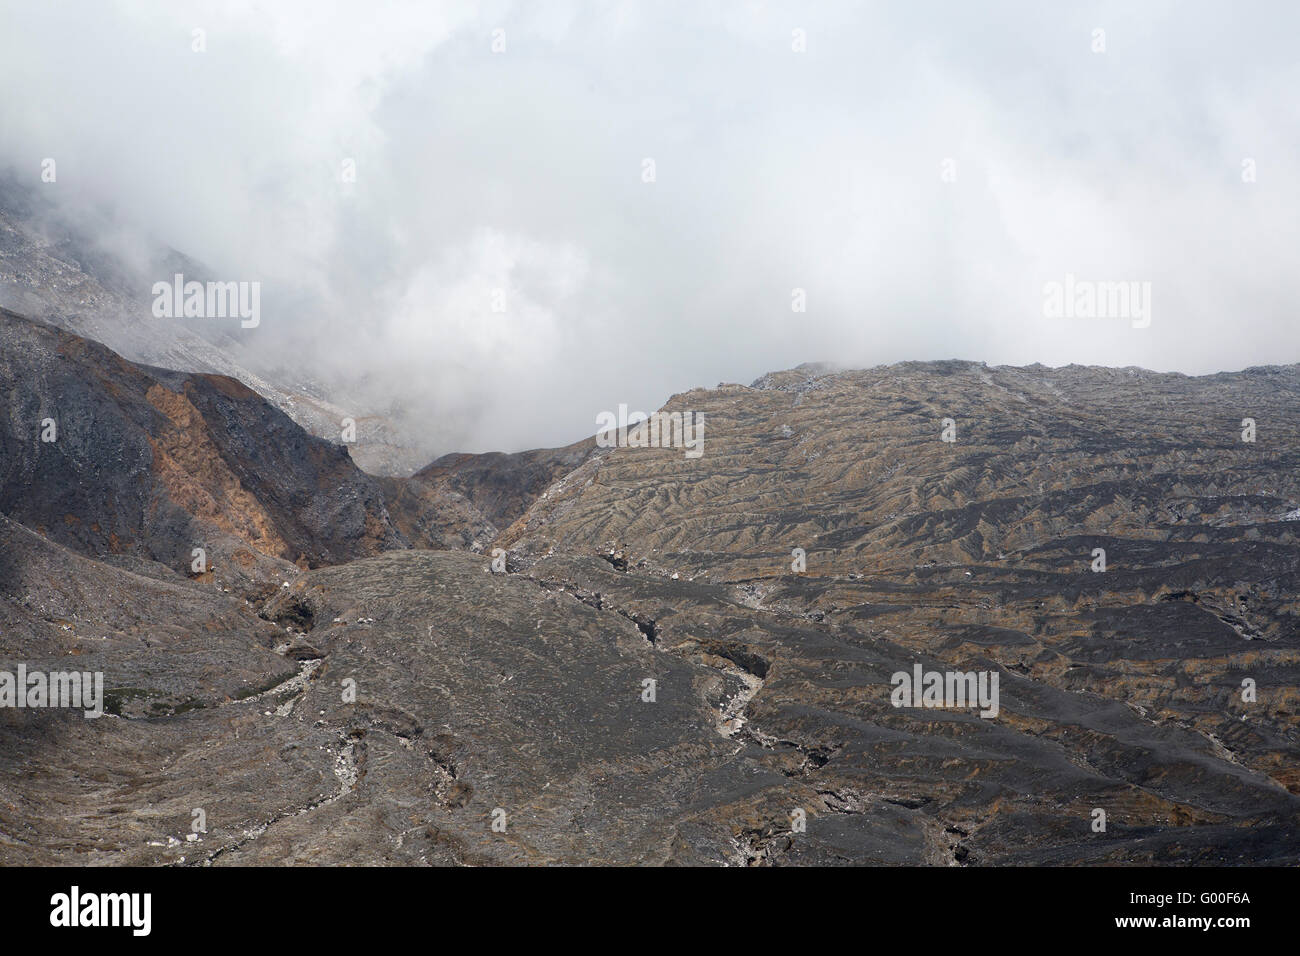 Rock and cloud at the crater of Poas Volcano in Parque Nacional Volcan Poas (Poas Volcano National Park) in Costa - Stock Image